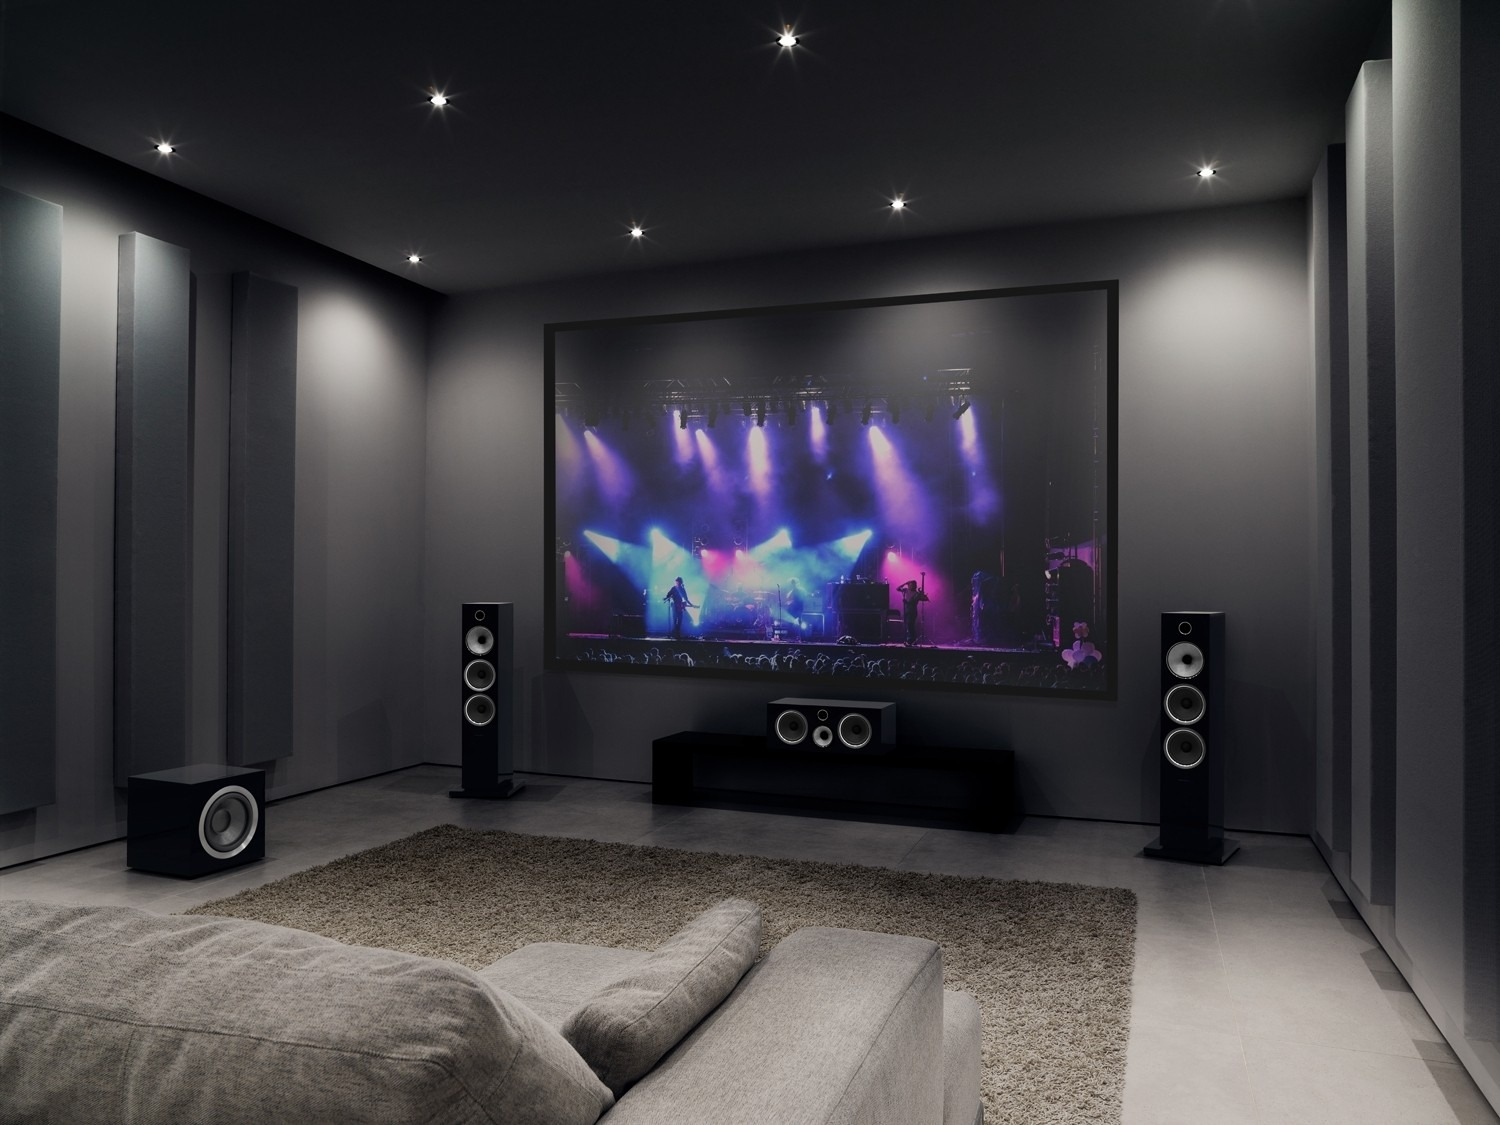 Upgrades For Your Home Theatre